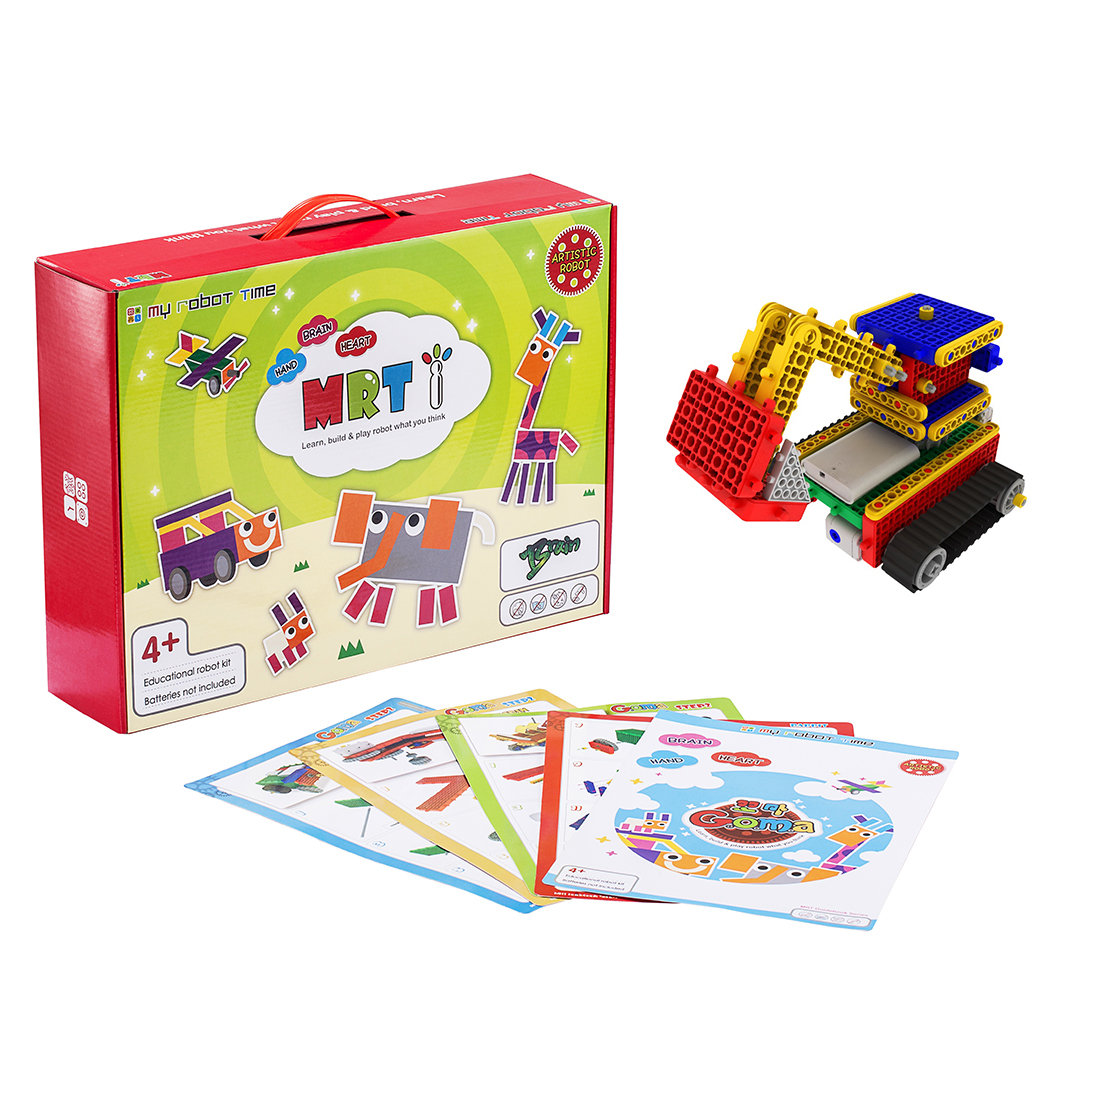 My Robot Time MRT 1-Goma Hand Colorful Robots Bulding Block Kit Assembly Educational Robot Toy For Beginner 4-5 Years Old